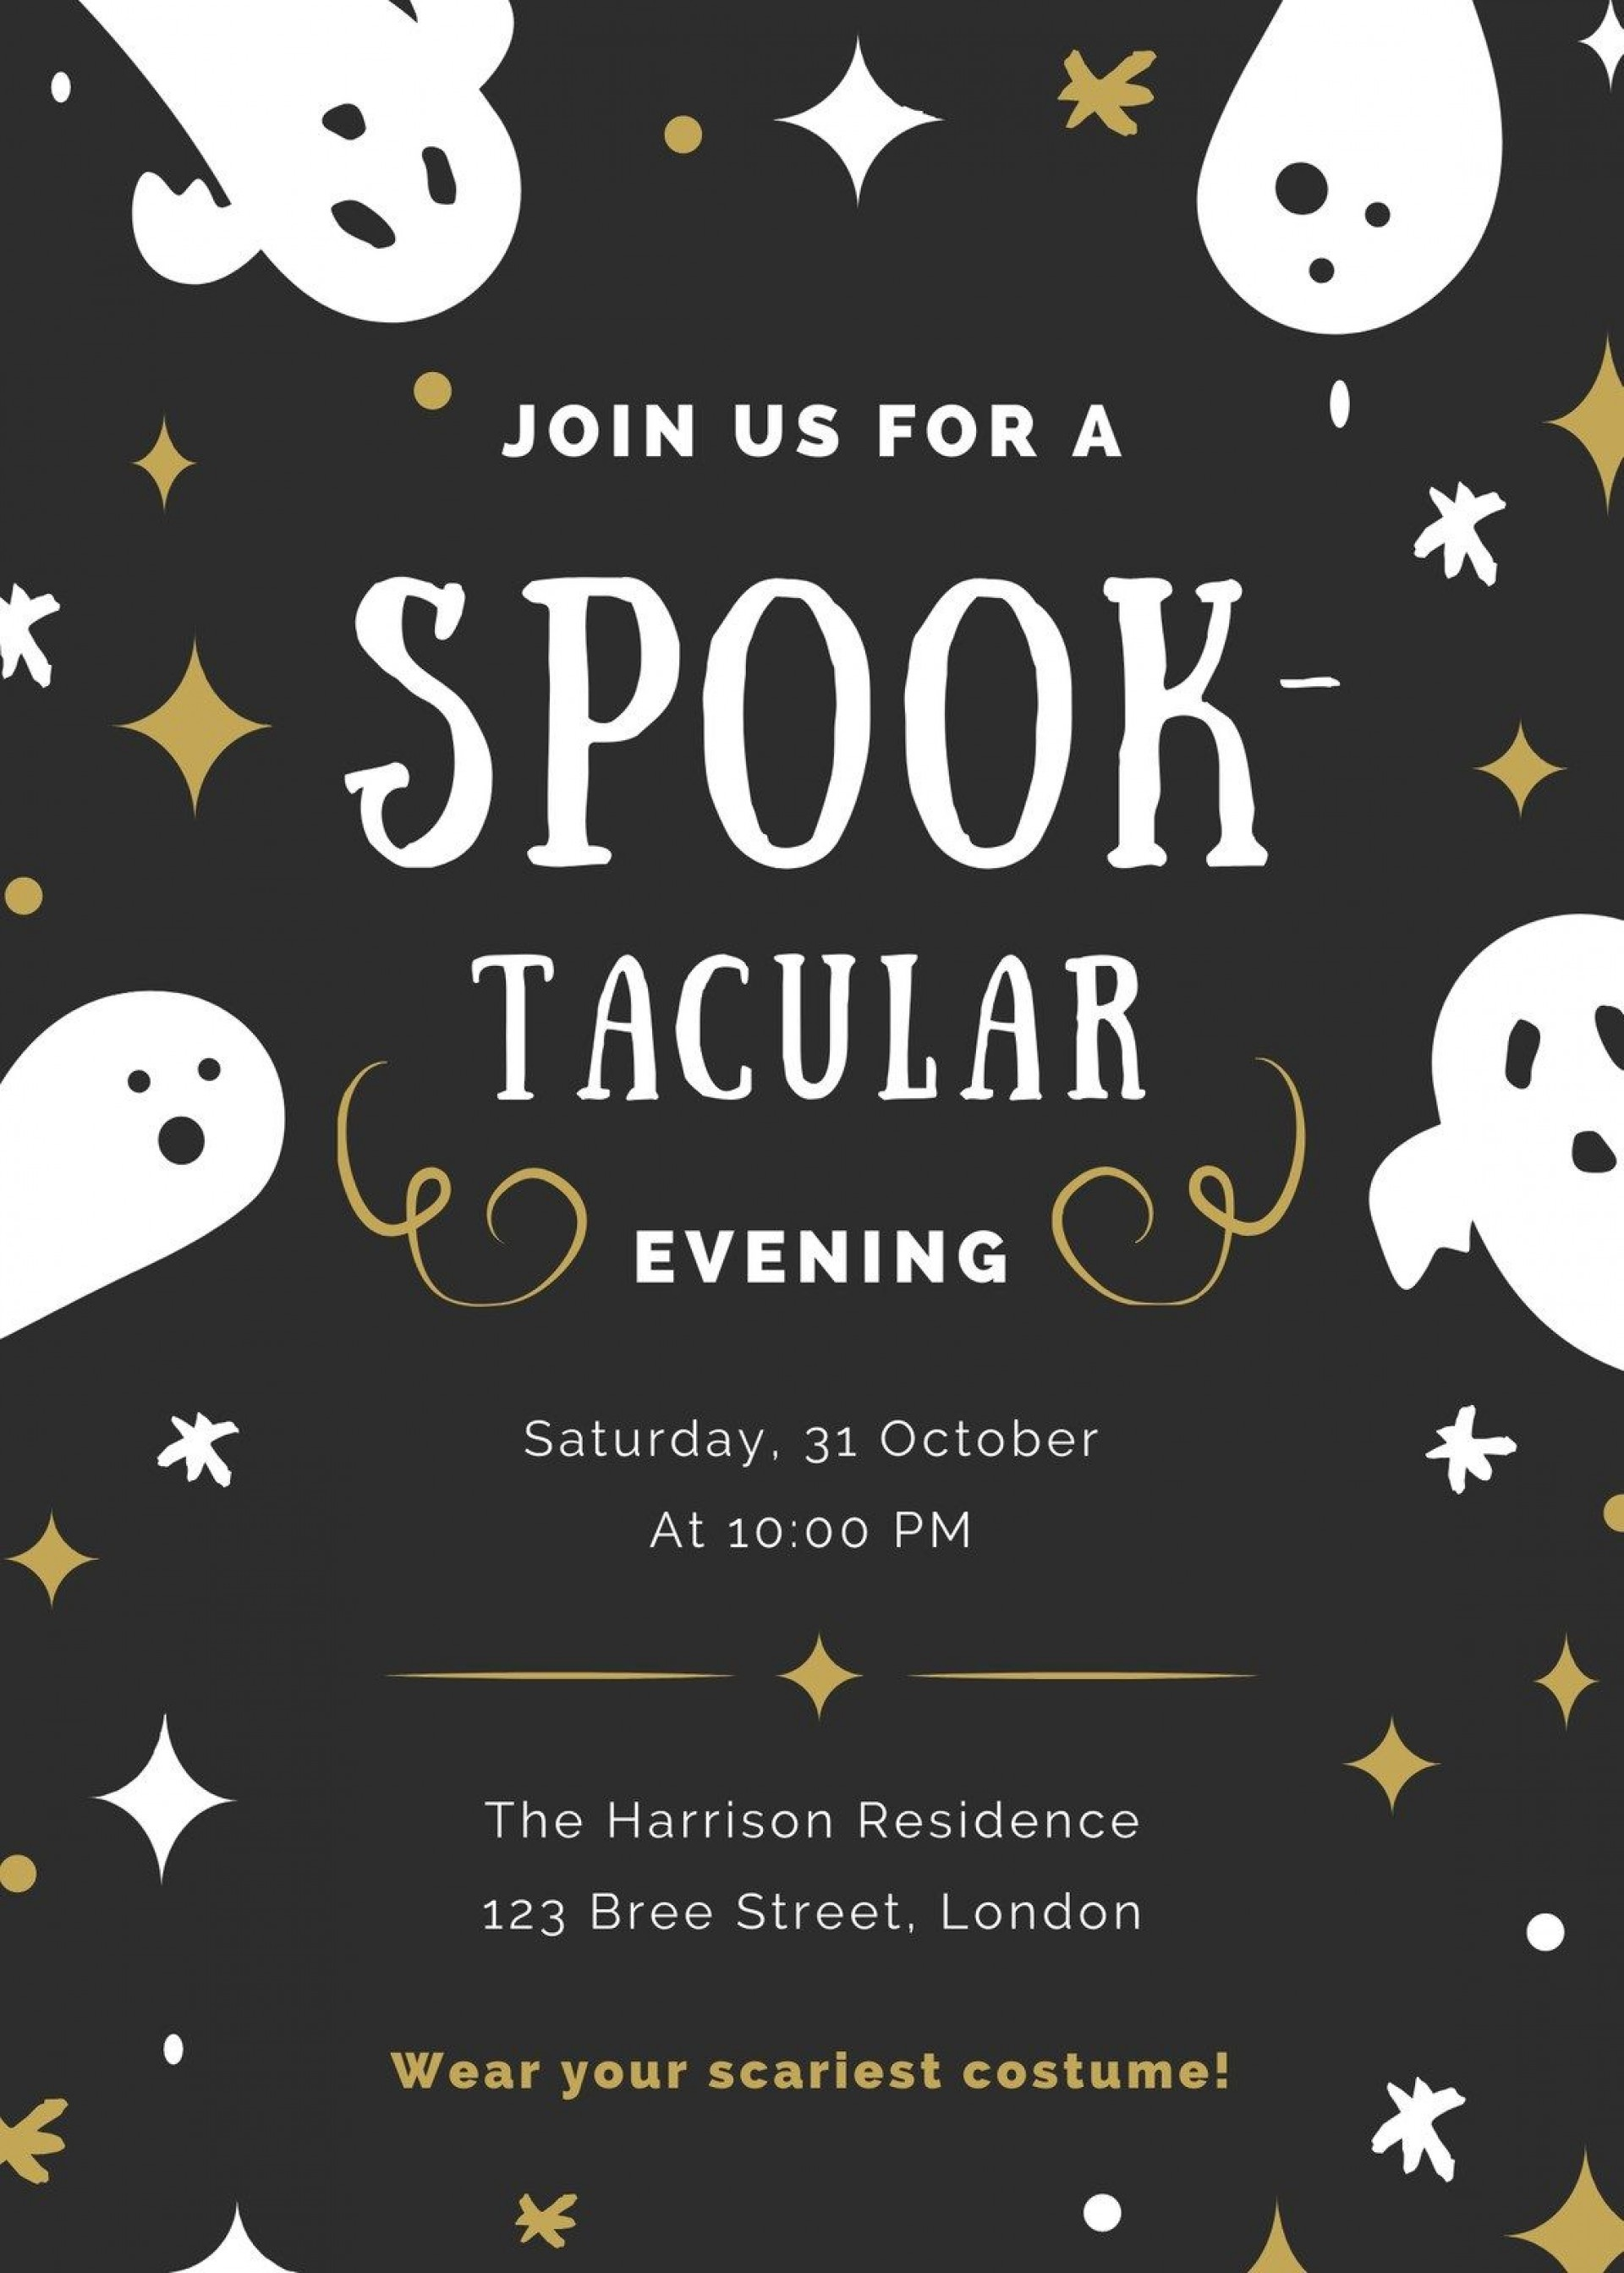 007 Frightening Halloween Party Invite Template Highest Quality  Spooky Invitation Free Printable Birthday Download1920